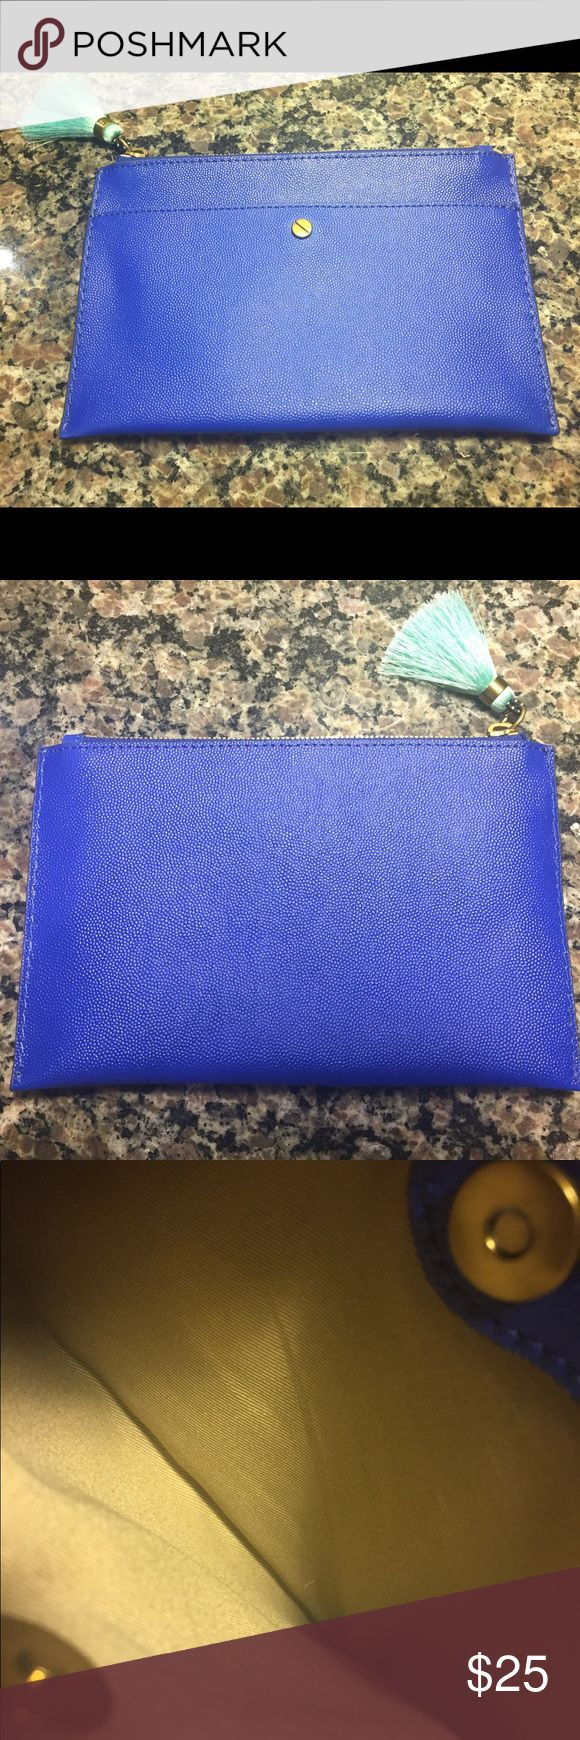 J Crew Medium Pouch Italian Leather in Blue Cute J Crew Pouch for sale in Brilliant Sapphire. Super cute and practical. Goes with any color. Pretty Italian Leather. No tears or wearing off. It's new, just took the tag off! See pics! Original price online $45 asking $25 or open to offers 😊 Thanks for stopping! 💕✌🏻✨😁 J. Crew Bags Clutches & Wristlets